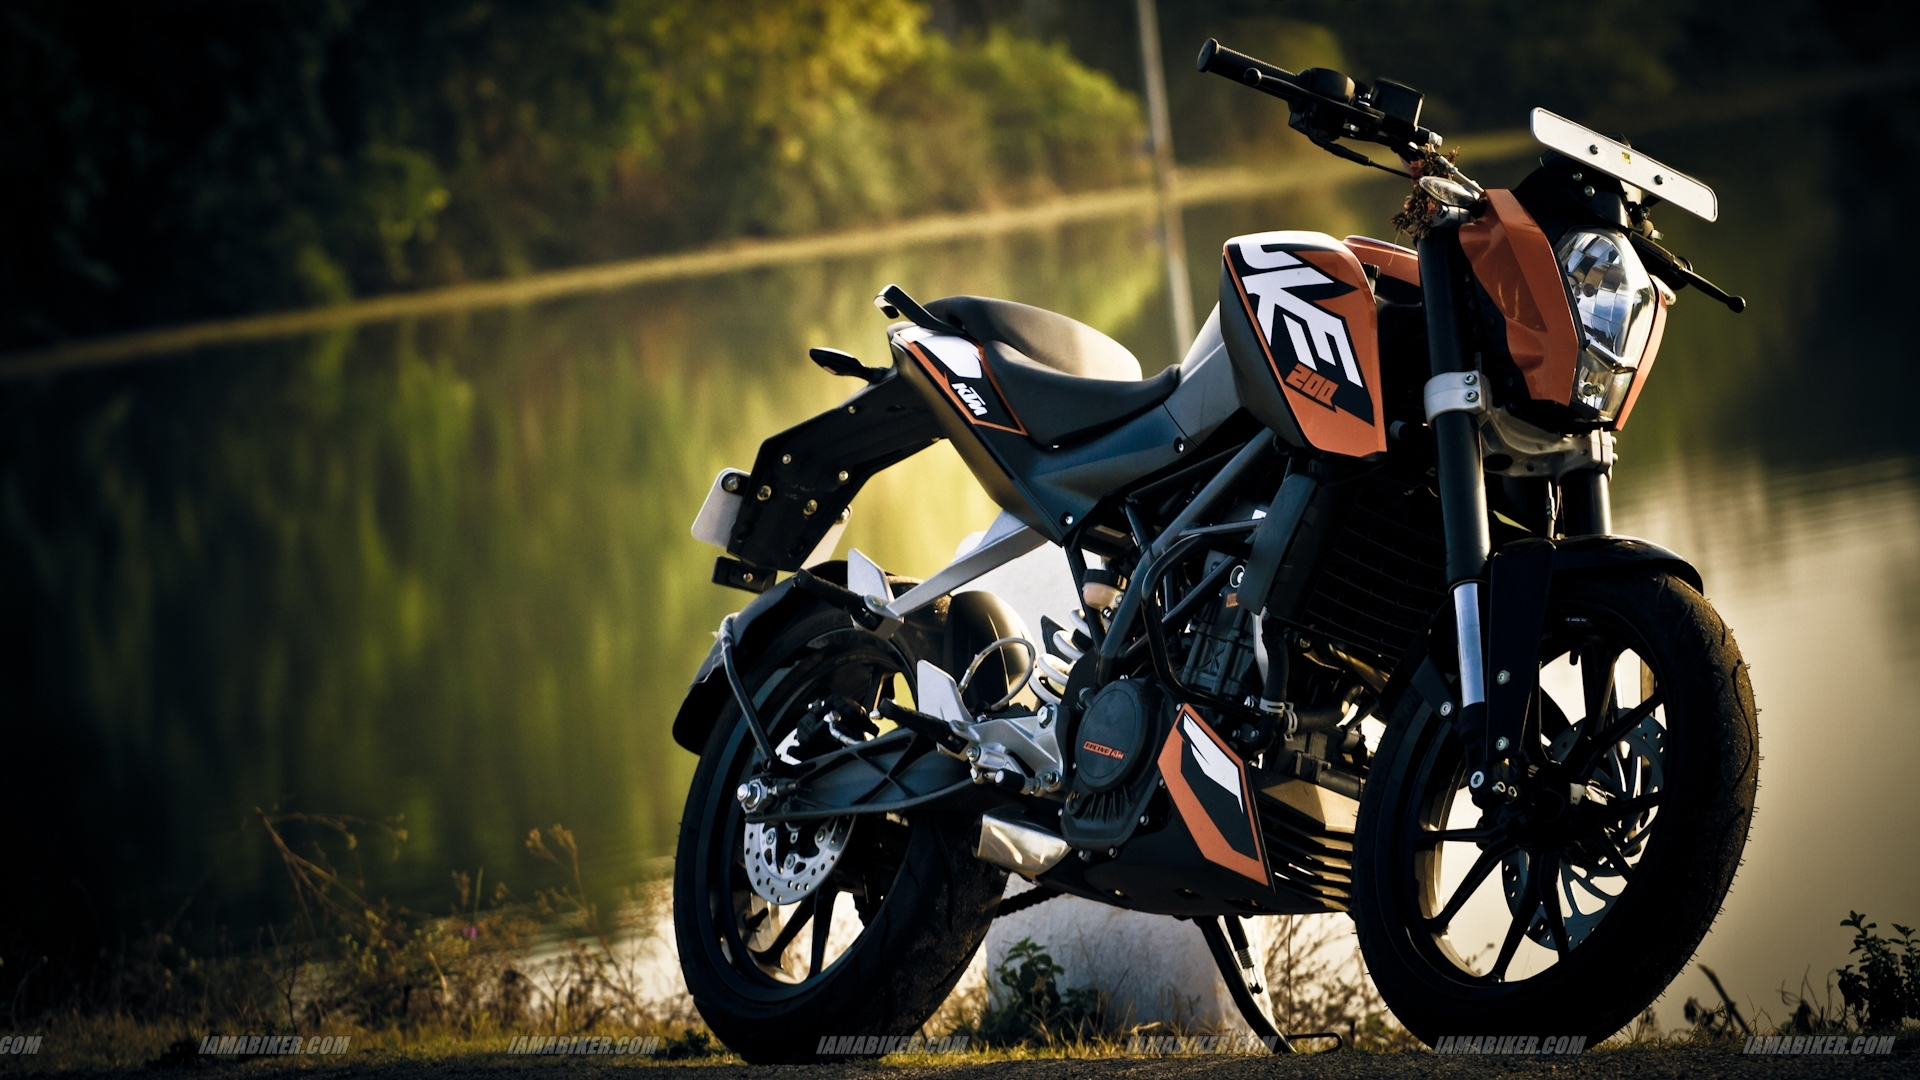 KTM Duke 200 Wallpaper Click For High Resolution 1920x1080